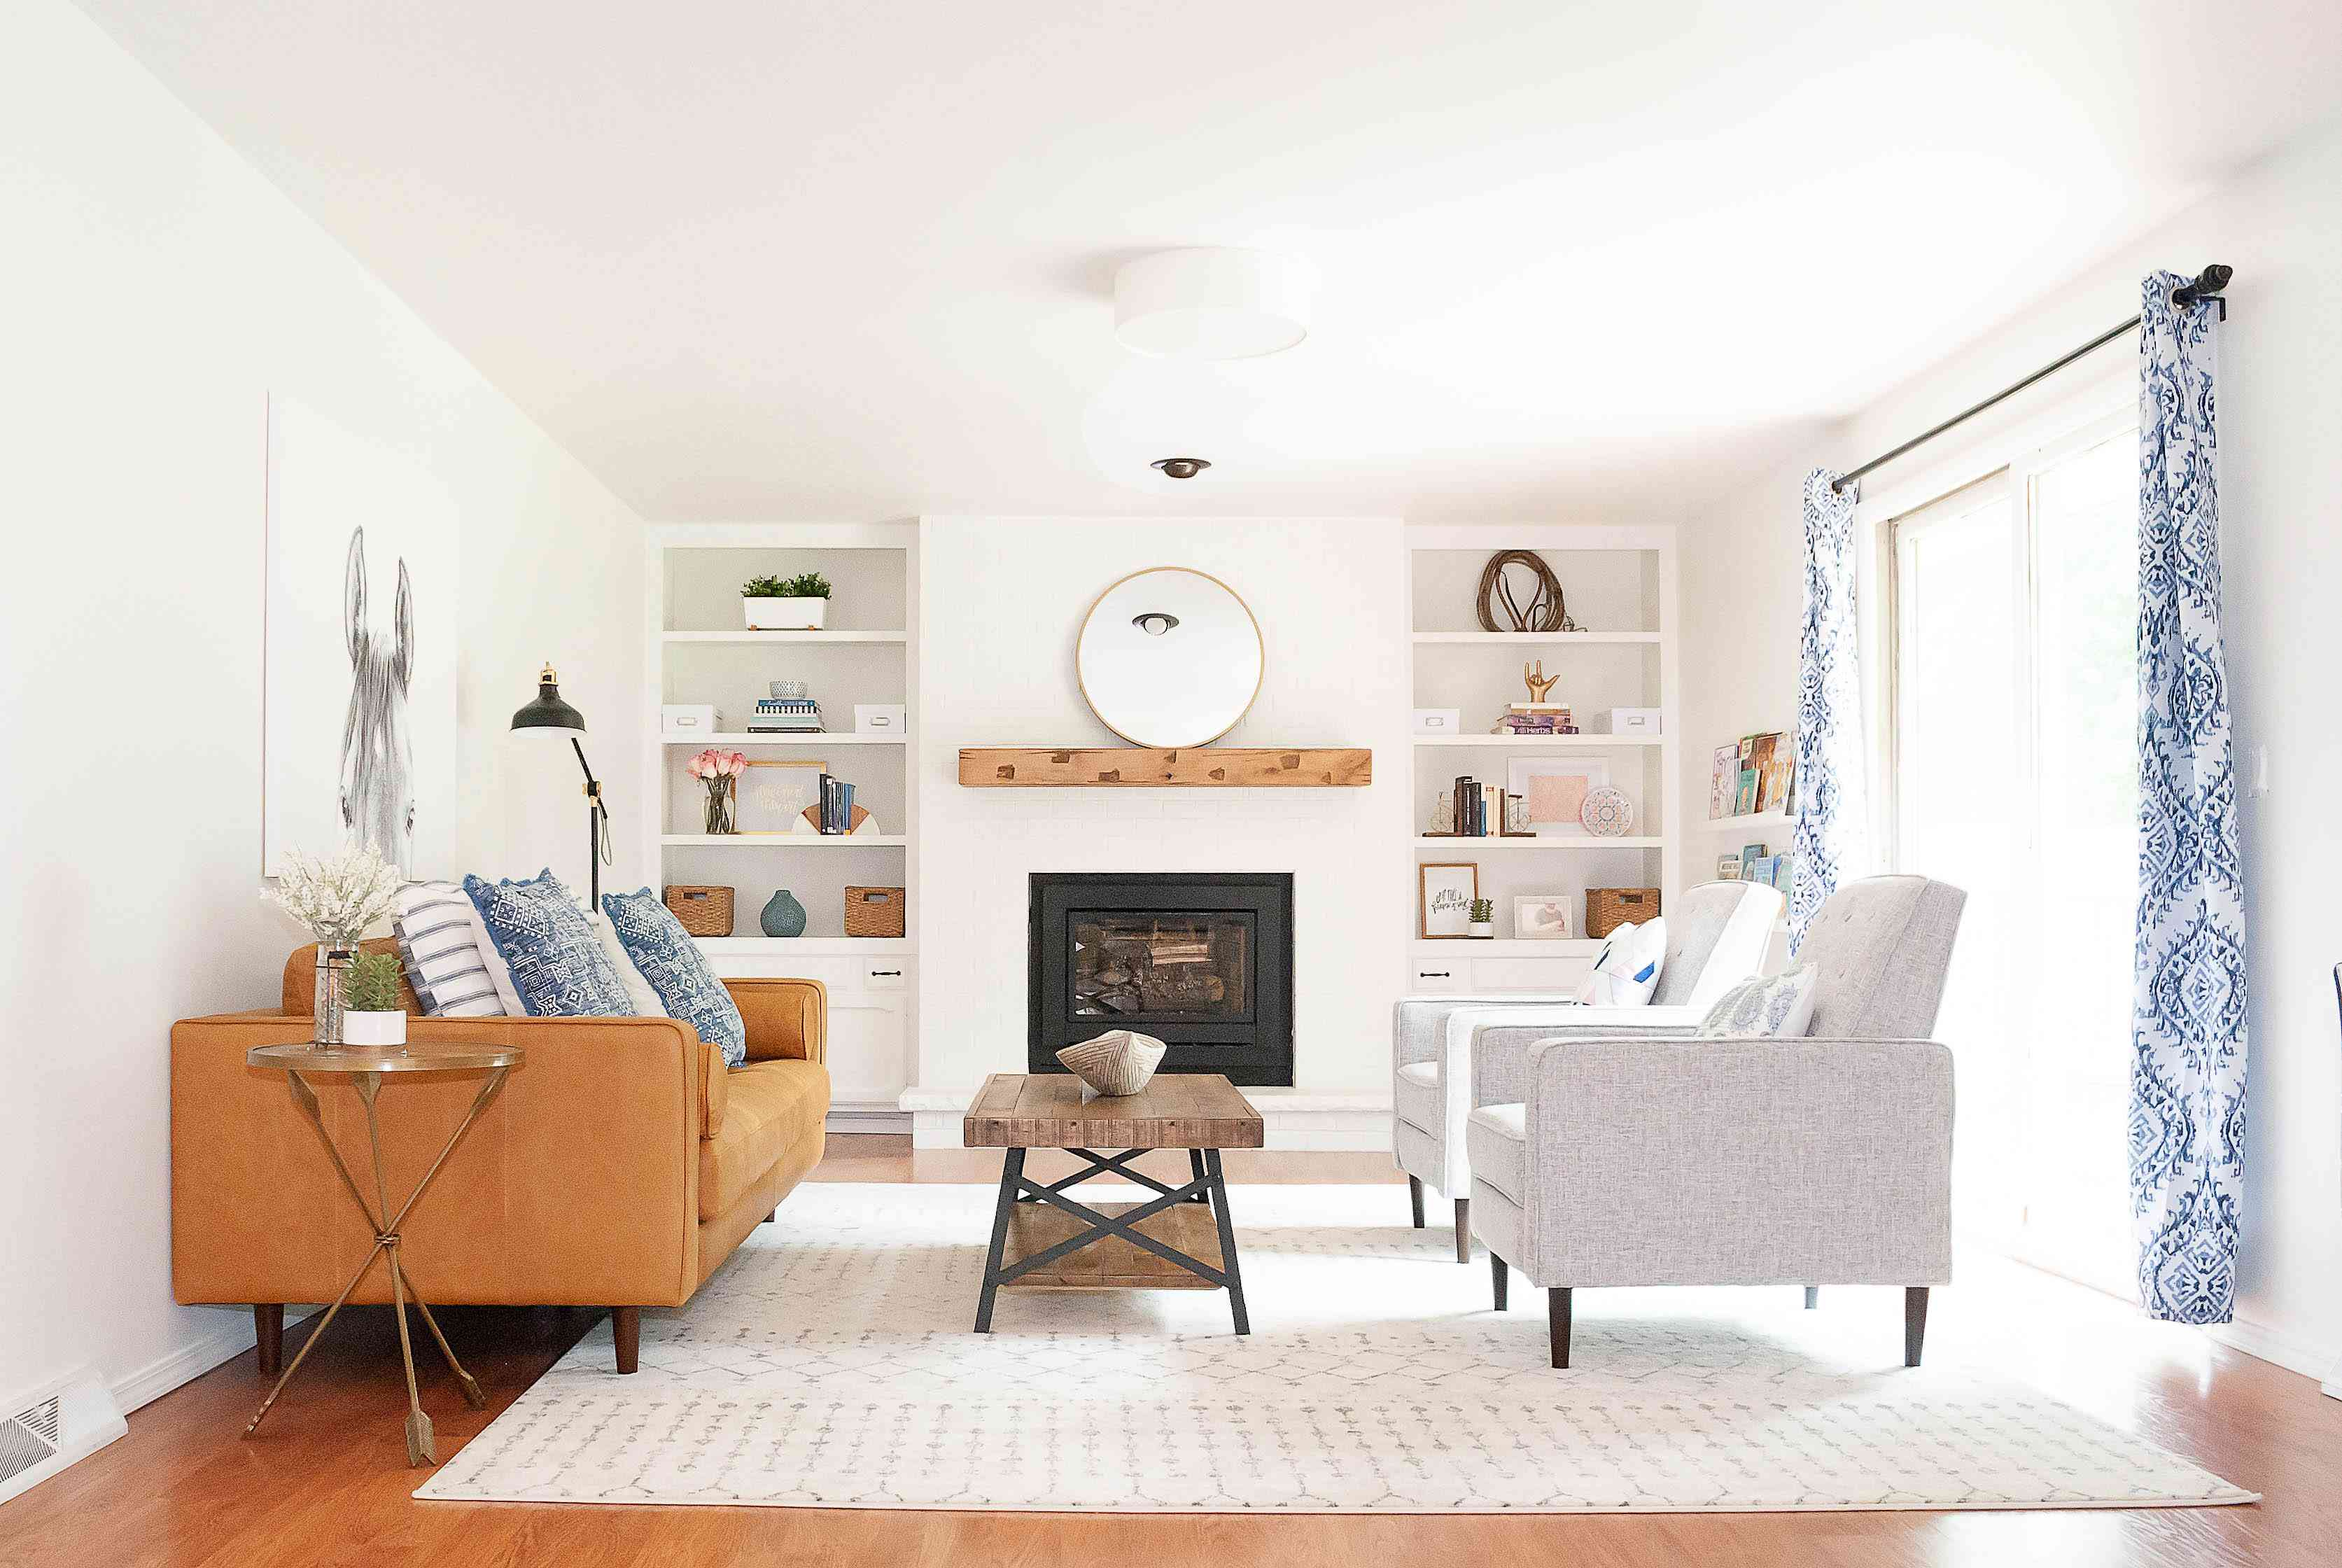 A bright white living room